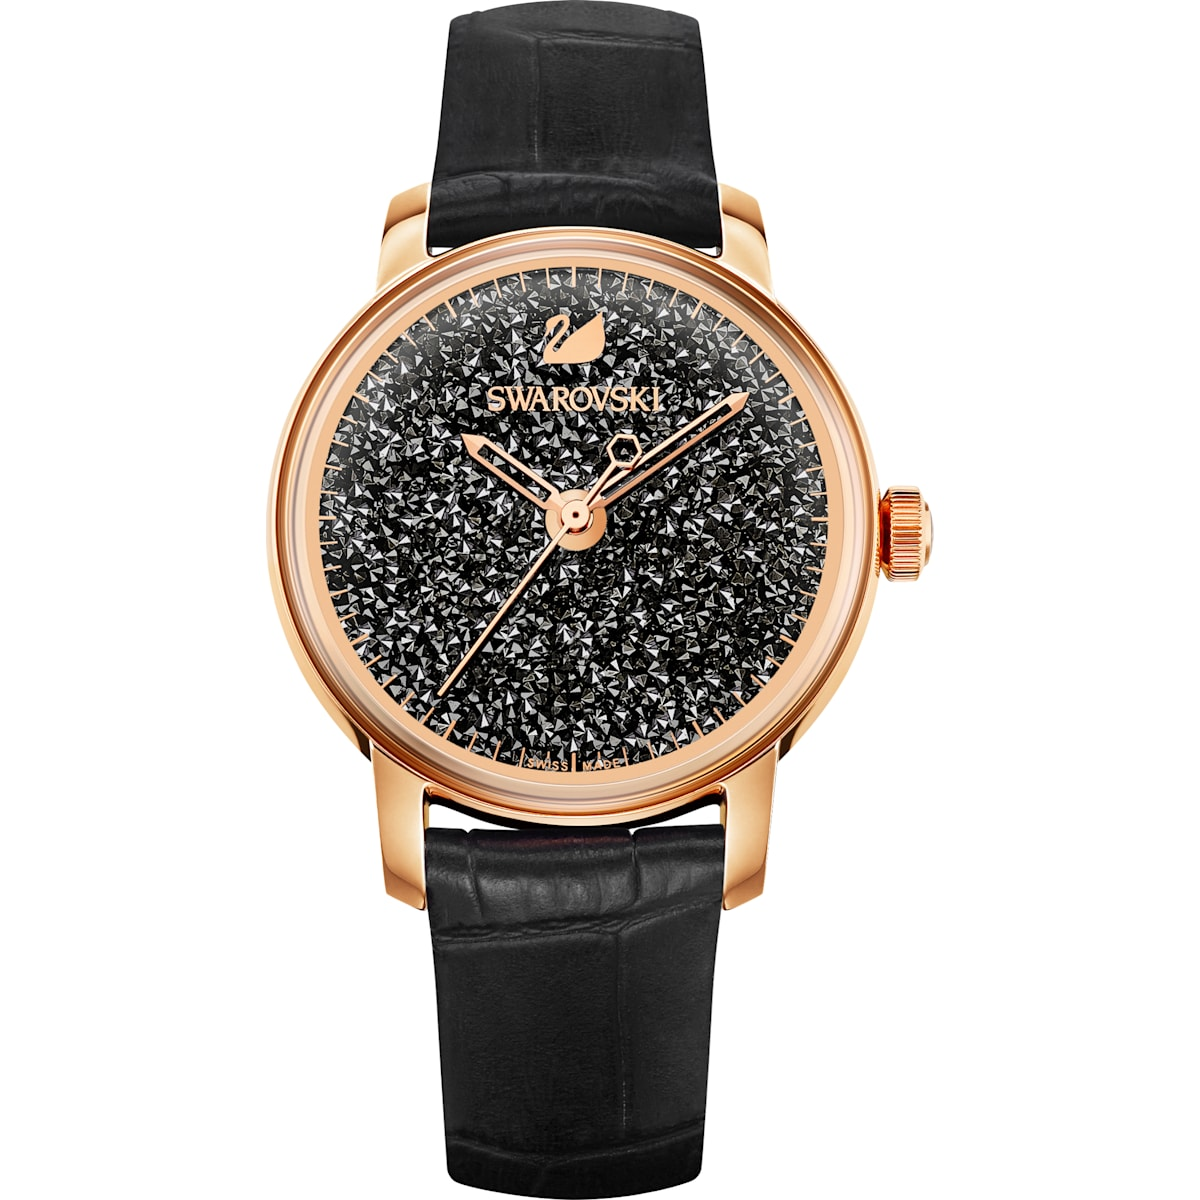 00711043152d4 Crystalline Hours Watch, Leather strap, Black, Rose-gold tone PVD